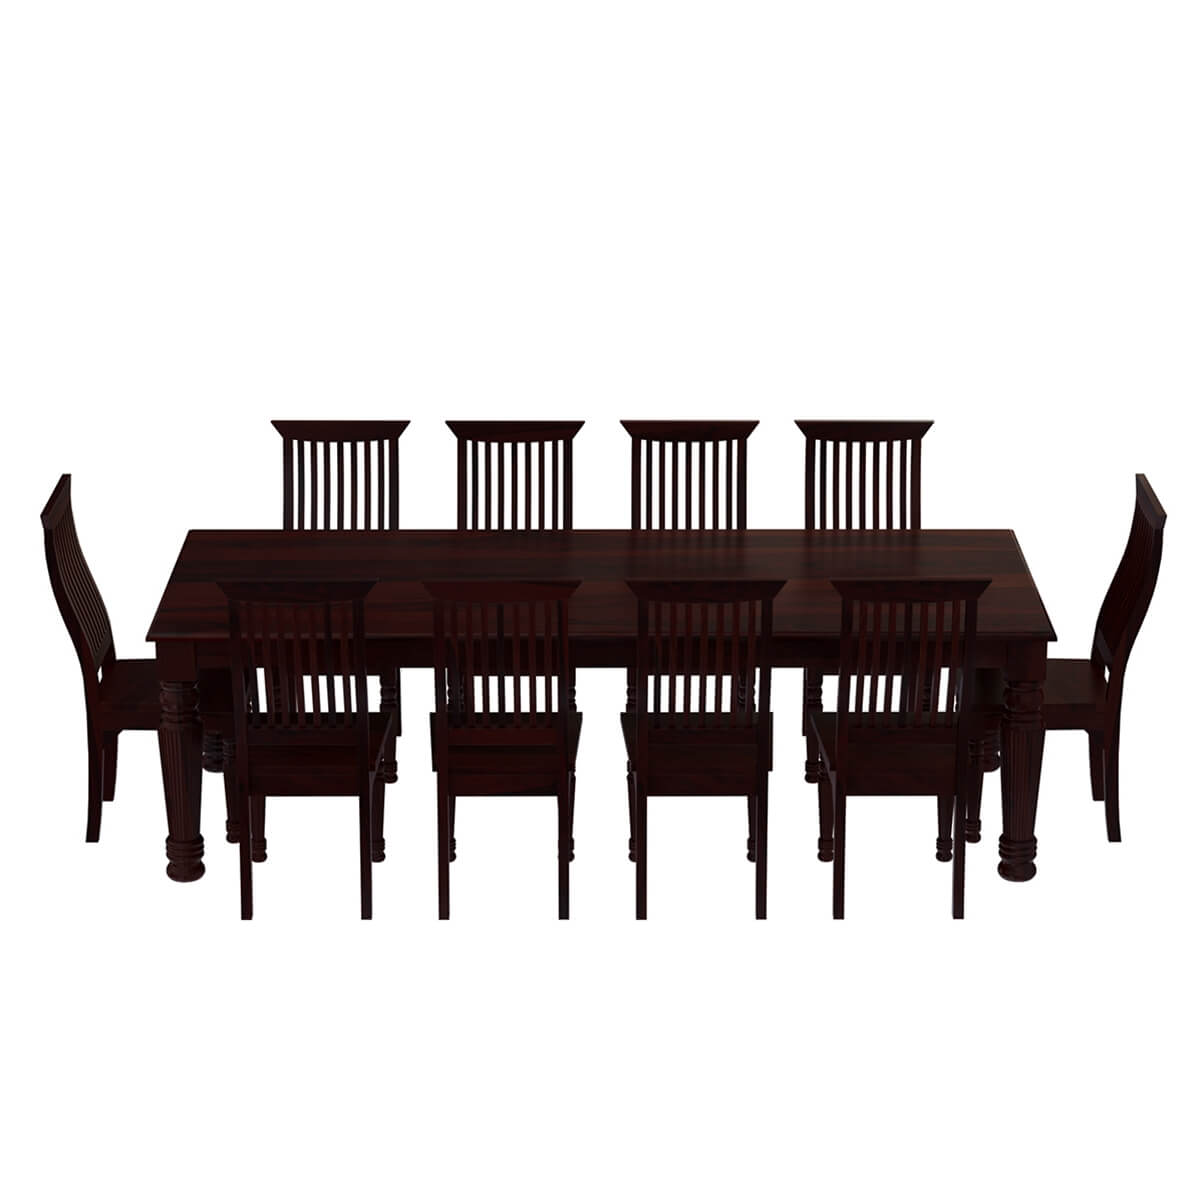 Dining Table Set For 10: Colonial American Large Rustic Wood Dining Table And 10